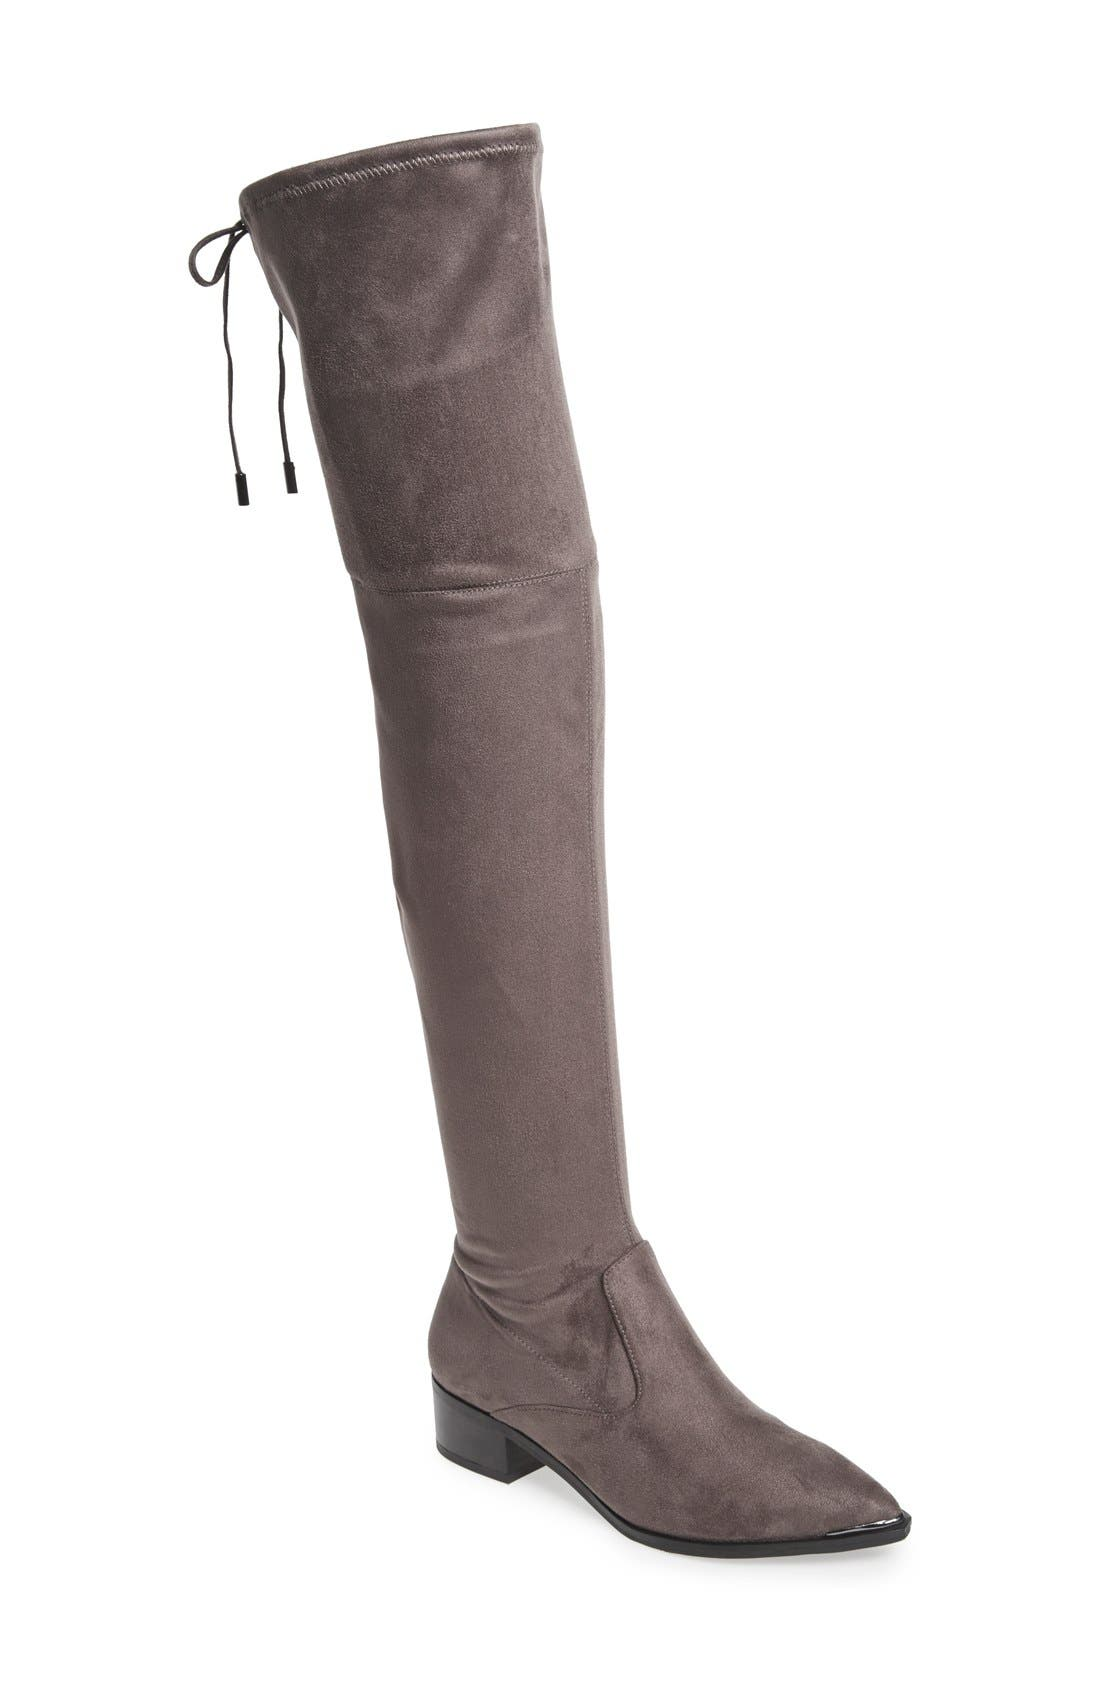 Yenna Over the Knee Boot,                         Main,                         color, Grey Stretch Fabric